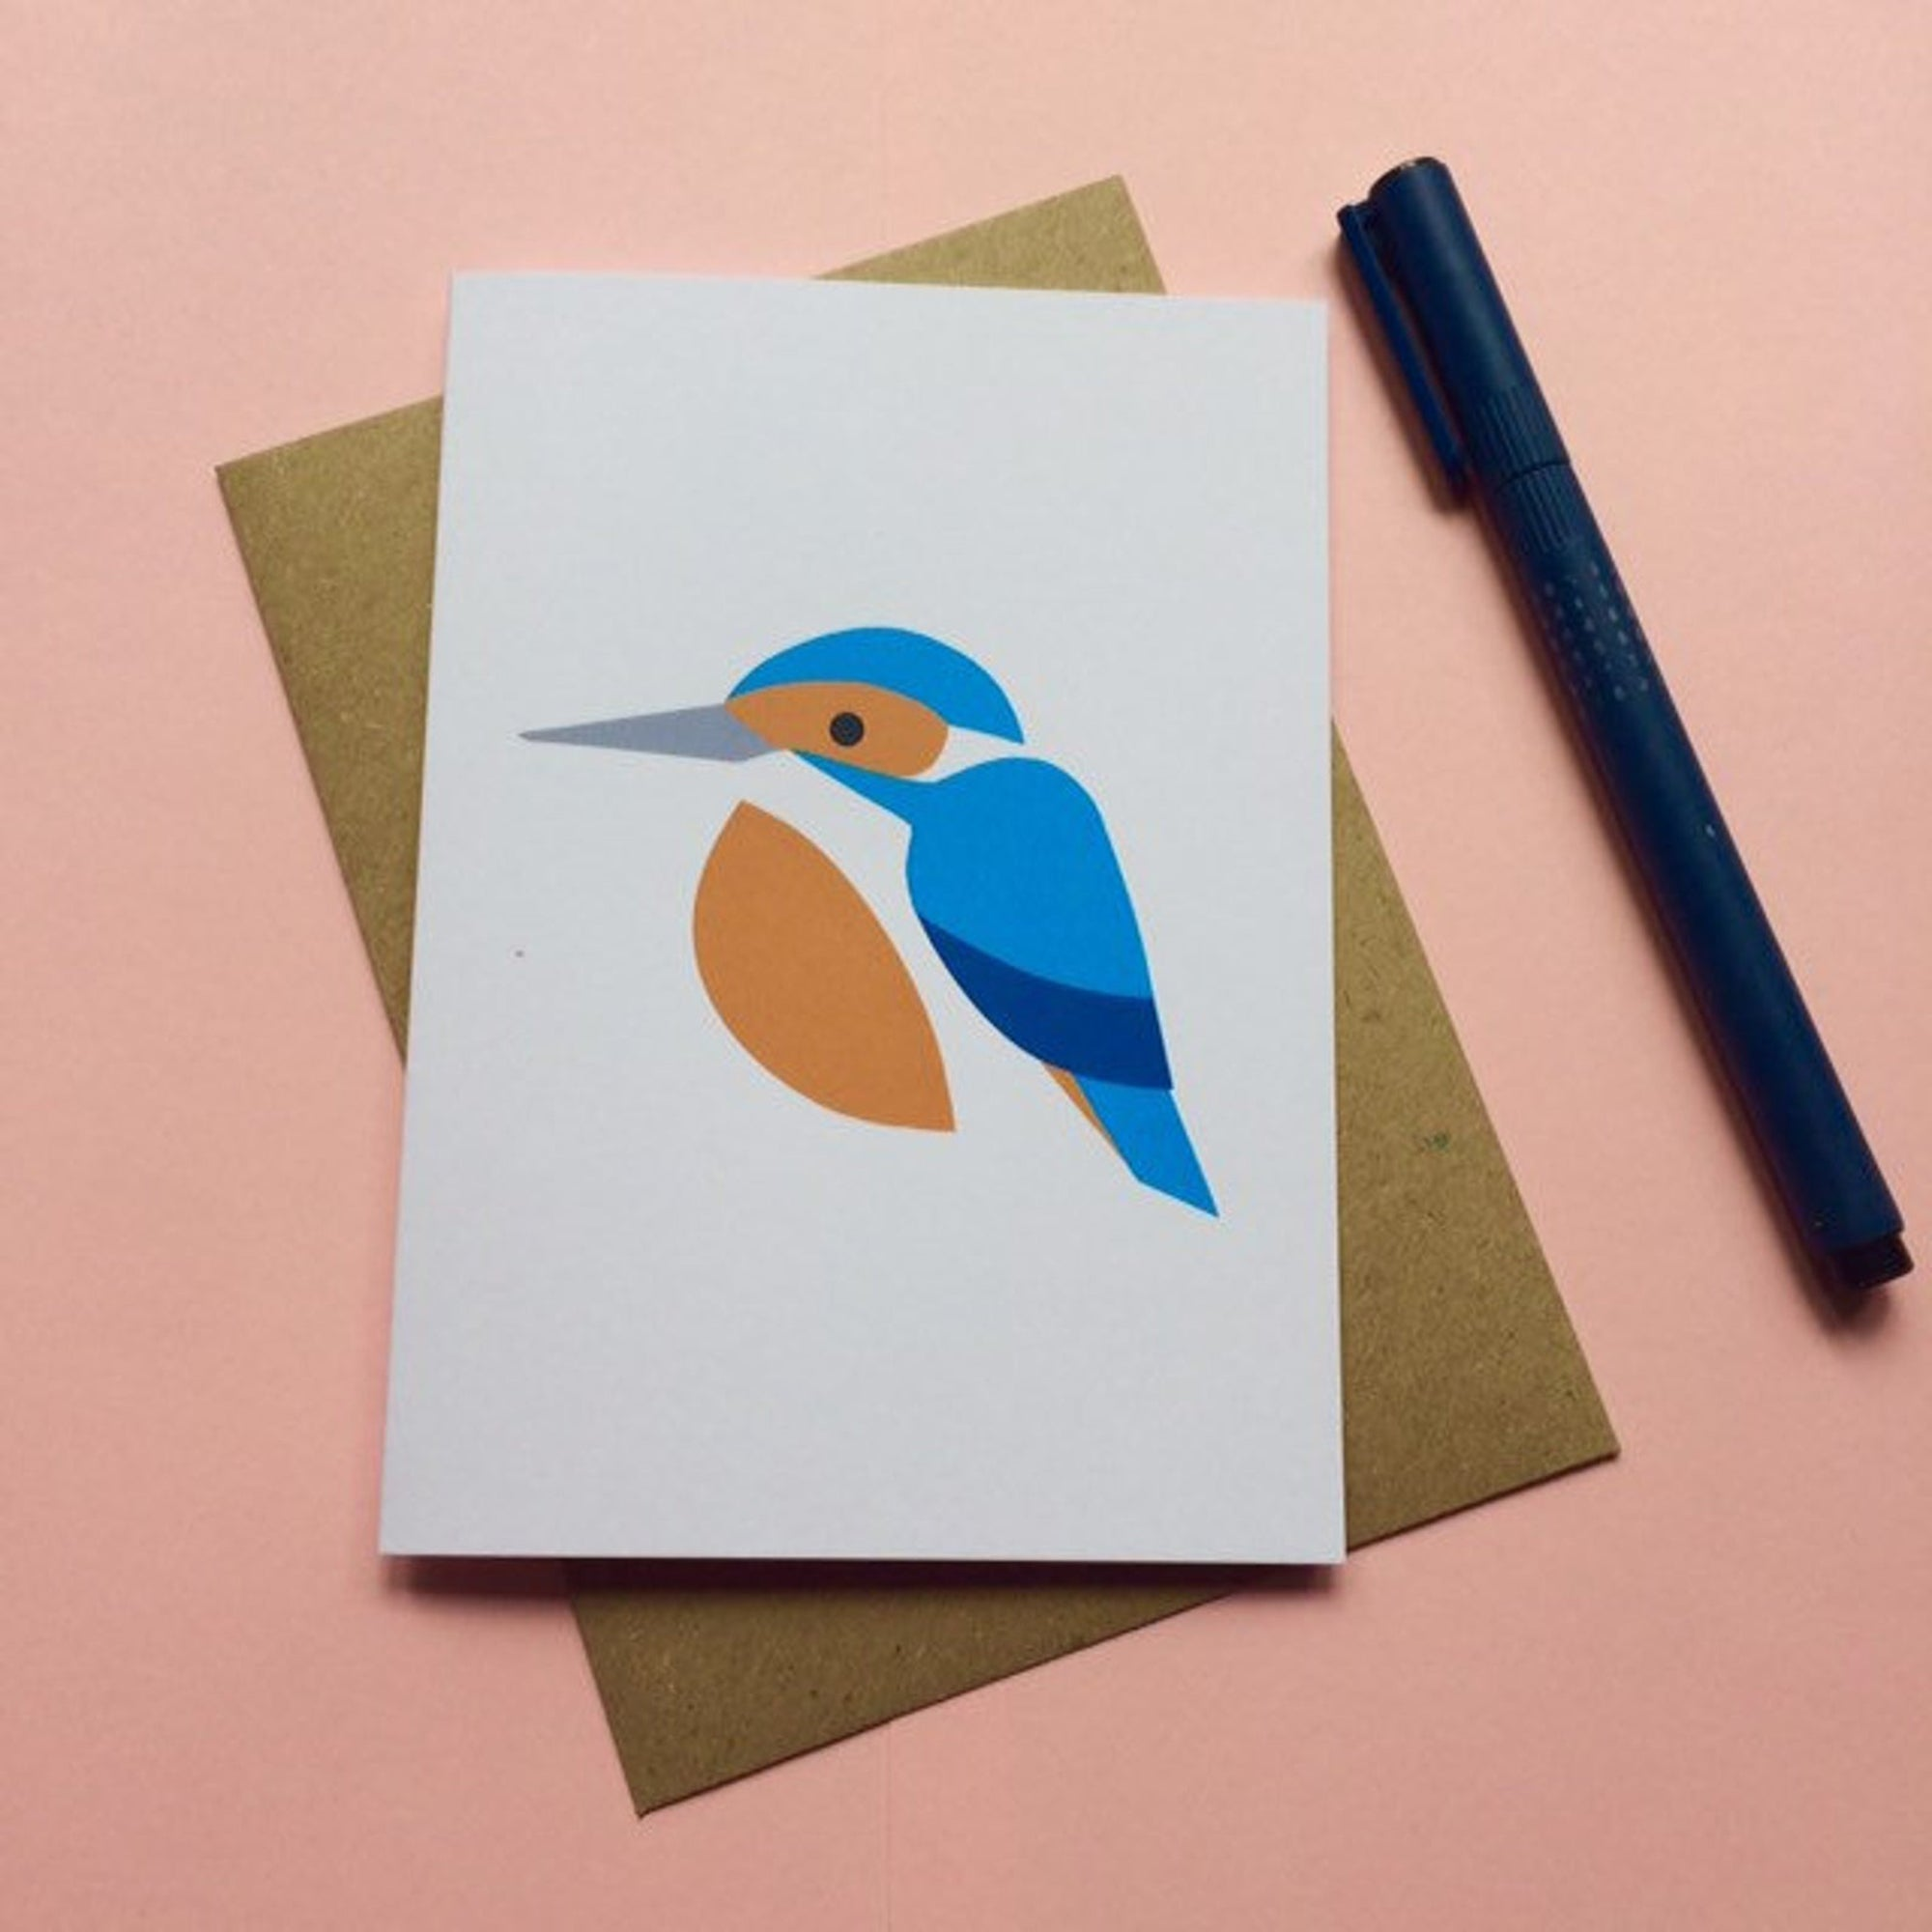 Kingfisher greetings card - Inspired